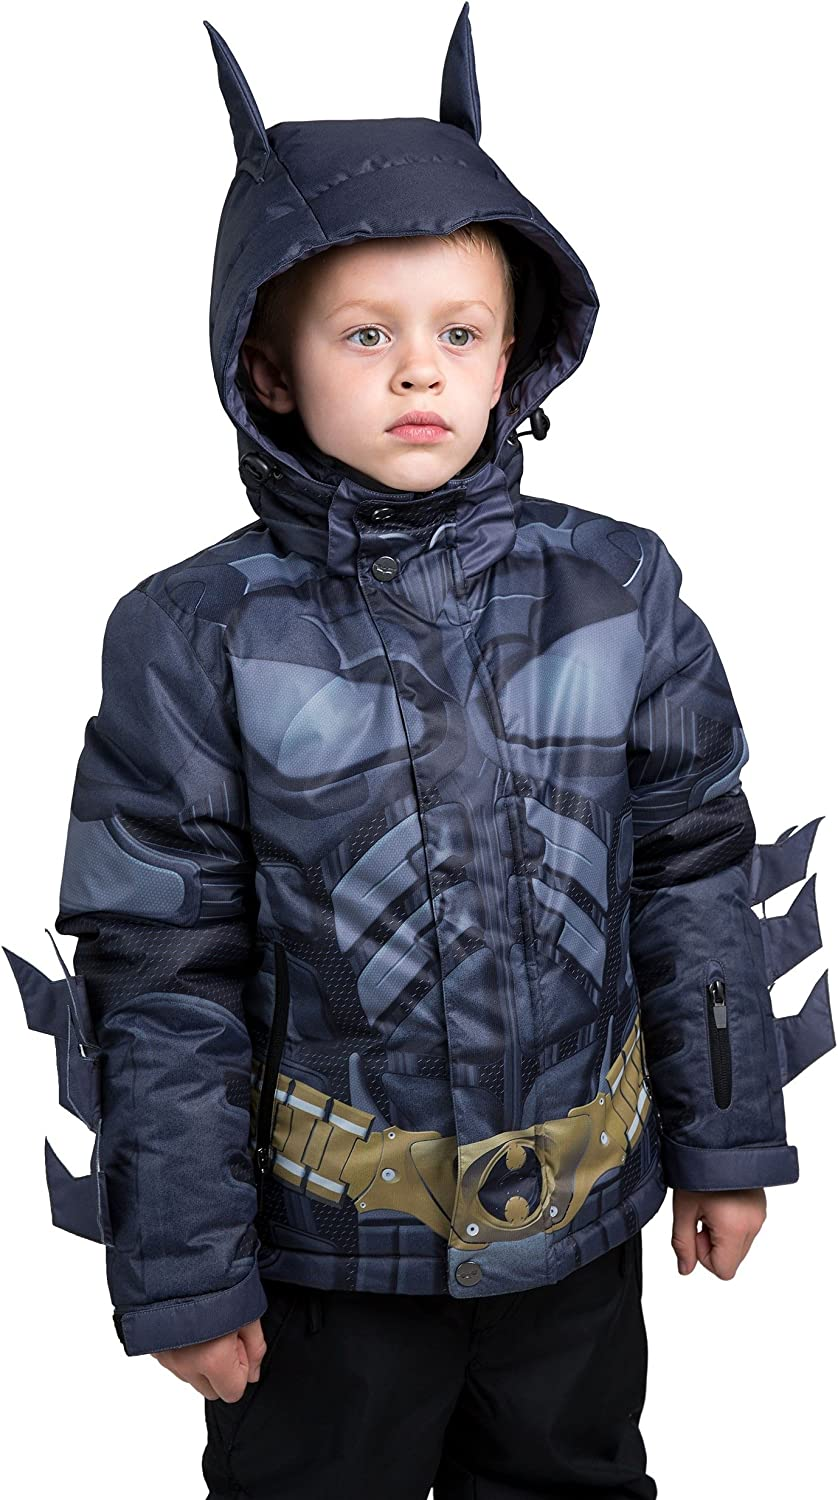 FUN.COM NEW before selling INC. Kids Batman Jacket Snow Knight Dark Inventory cleanup selling sale